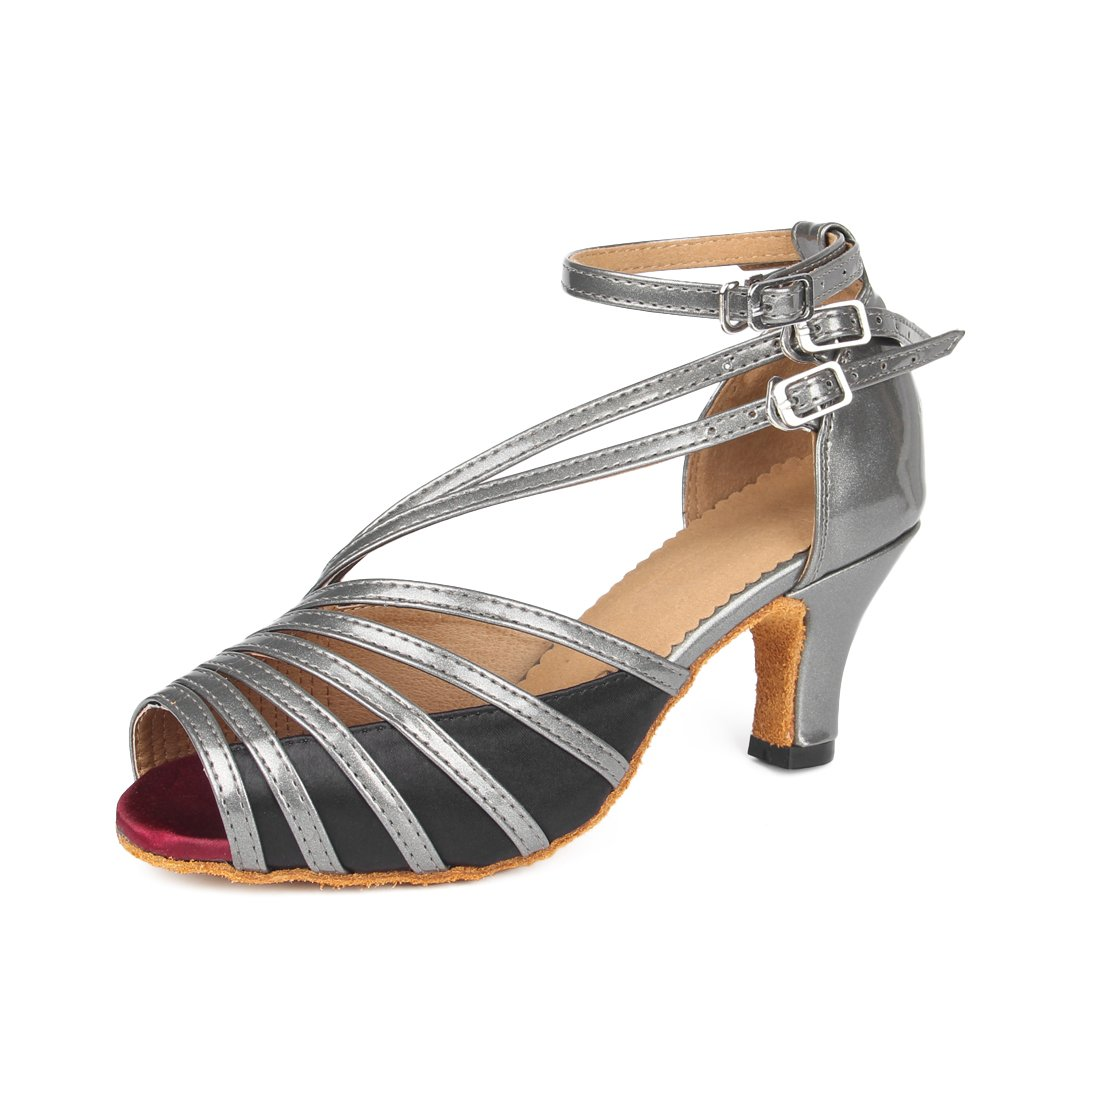 Grey 2.36  Lanpet Dance shoes for Women Satin Salsa Latin Tango Ballroom Dancing Class shoes High Heels